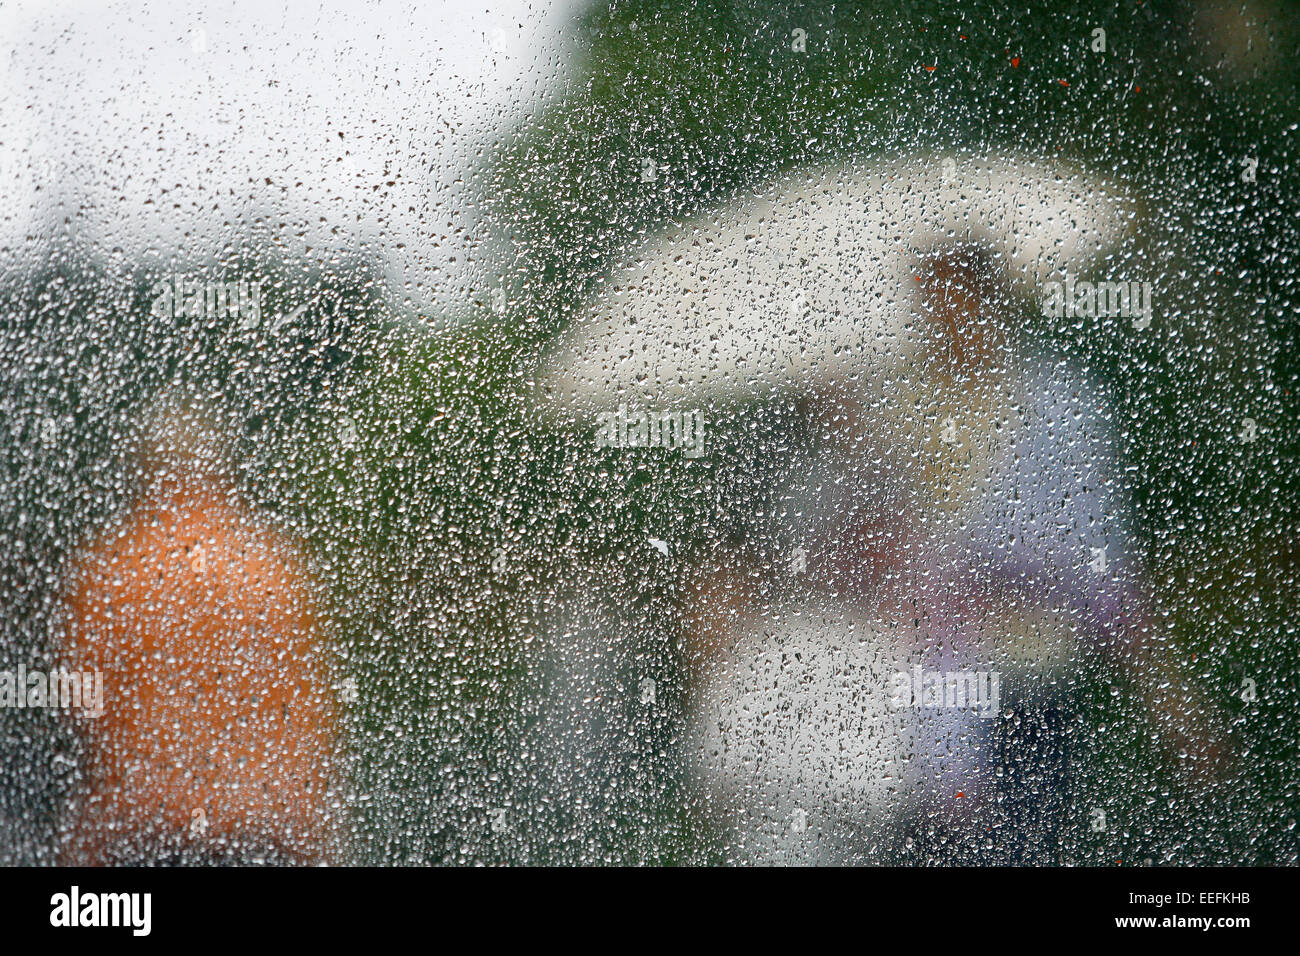 Rain on a window looking out to people in a street scene - Stock Image